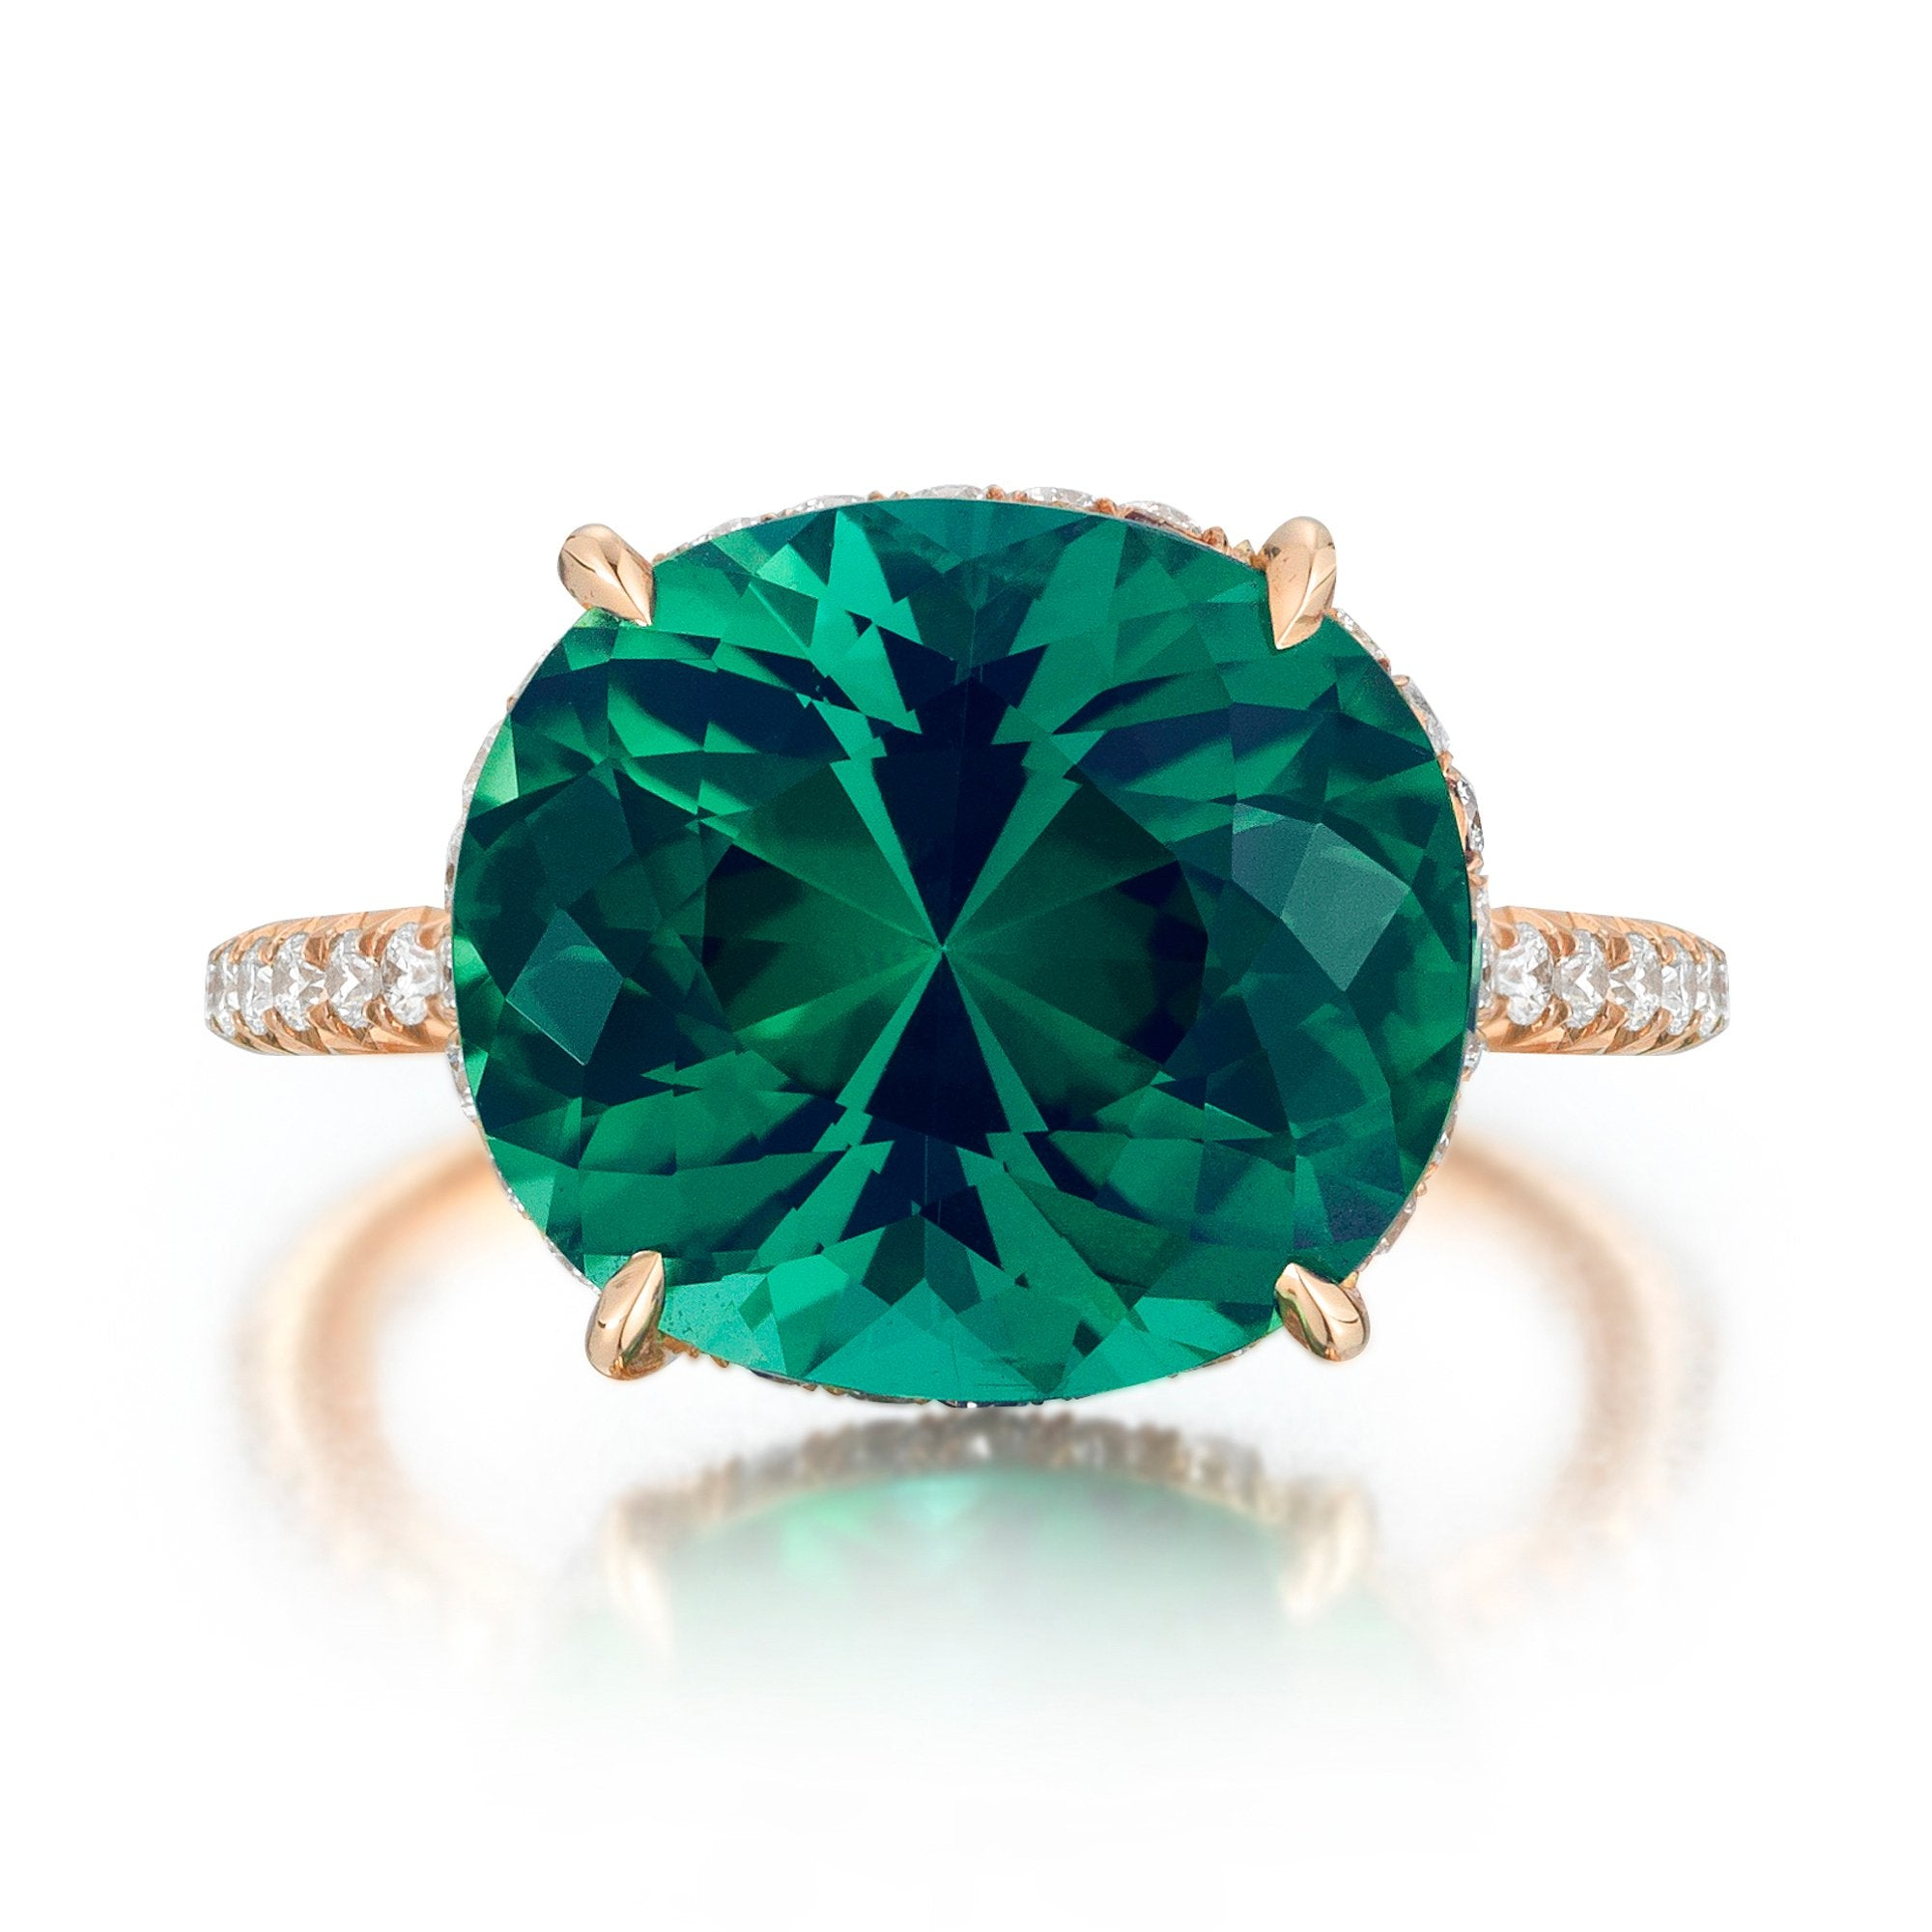 ring engagement green by peacock fullxfull campari eidelprecious gold rose diamond teal sapphire il rings oval listing